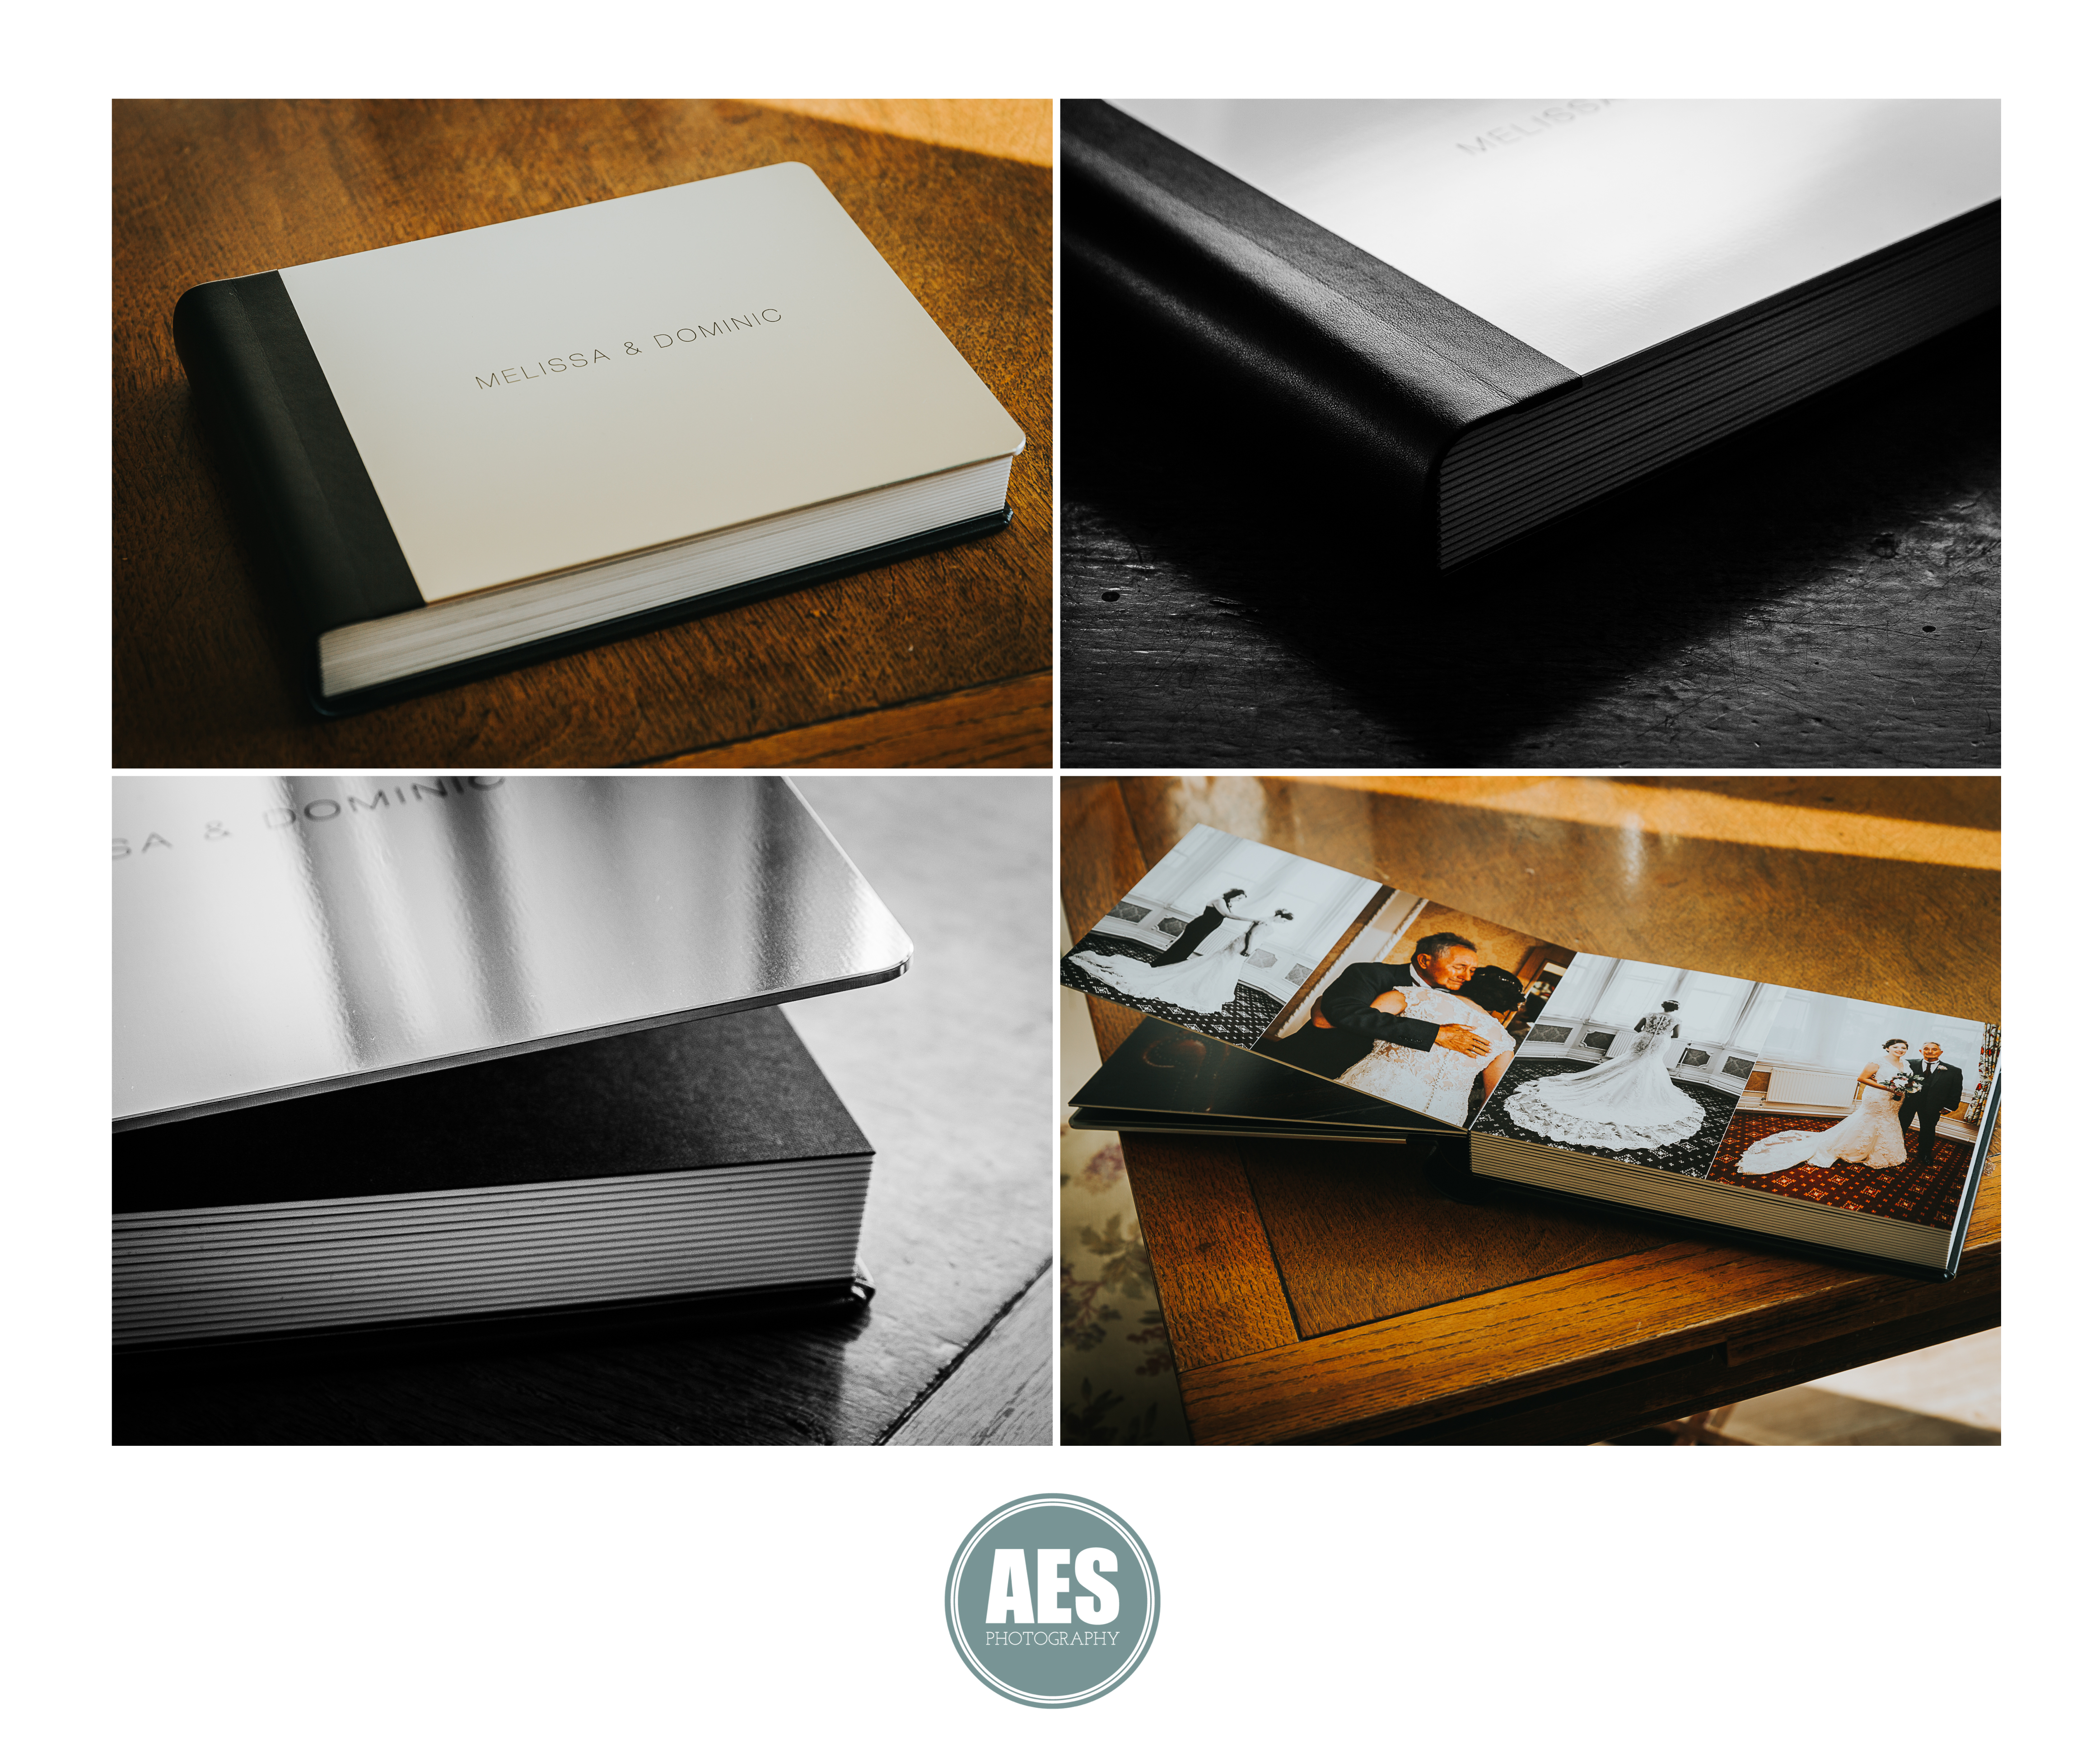 Graphikstudio Wedding album book with steel cover